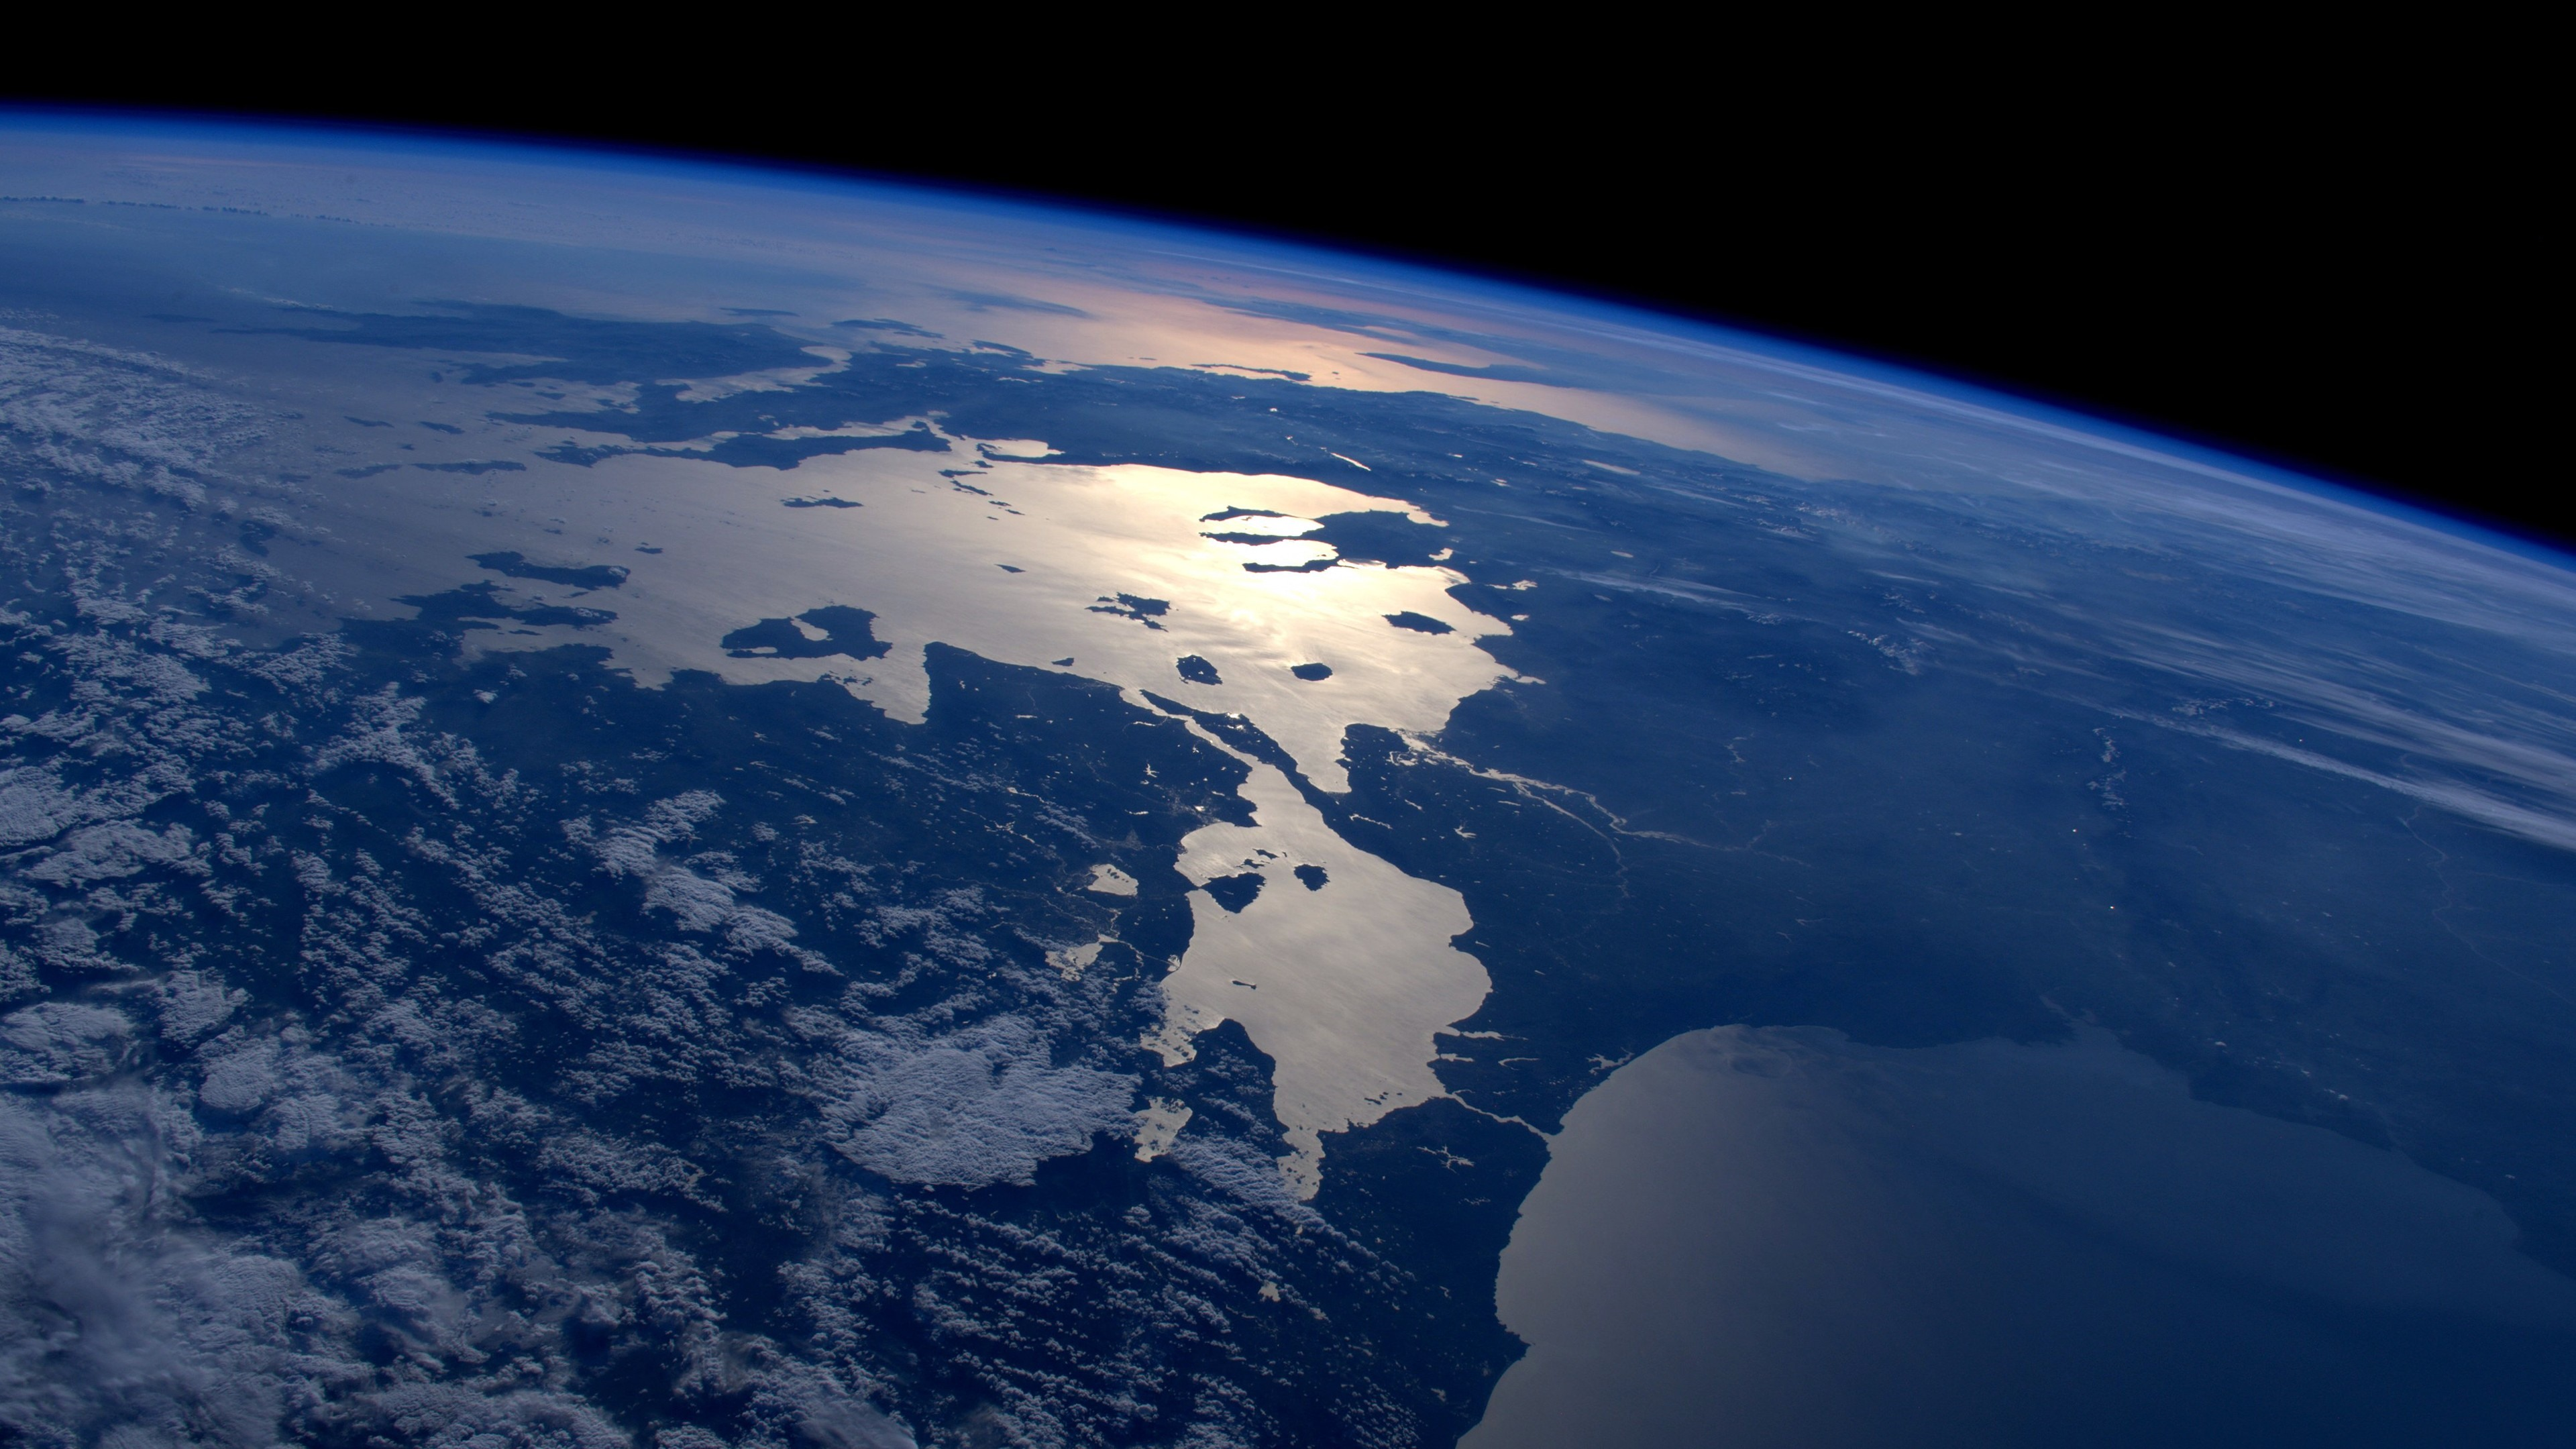 Wallpaper Earth Top View Space Land Sea 3840x2160 Uhd 4k Picture Image